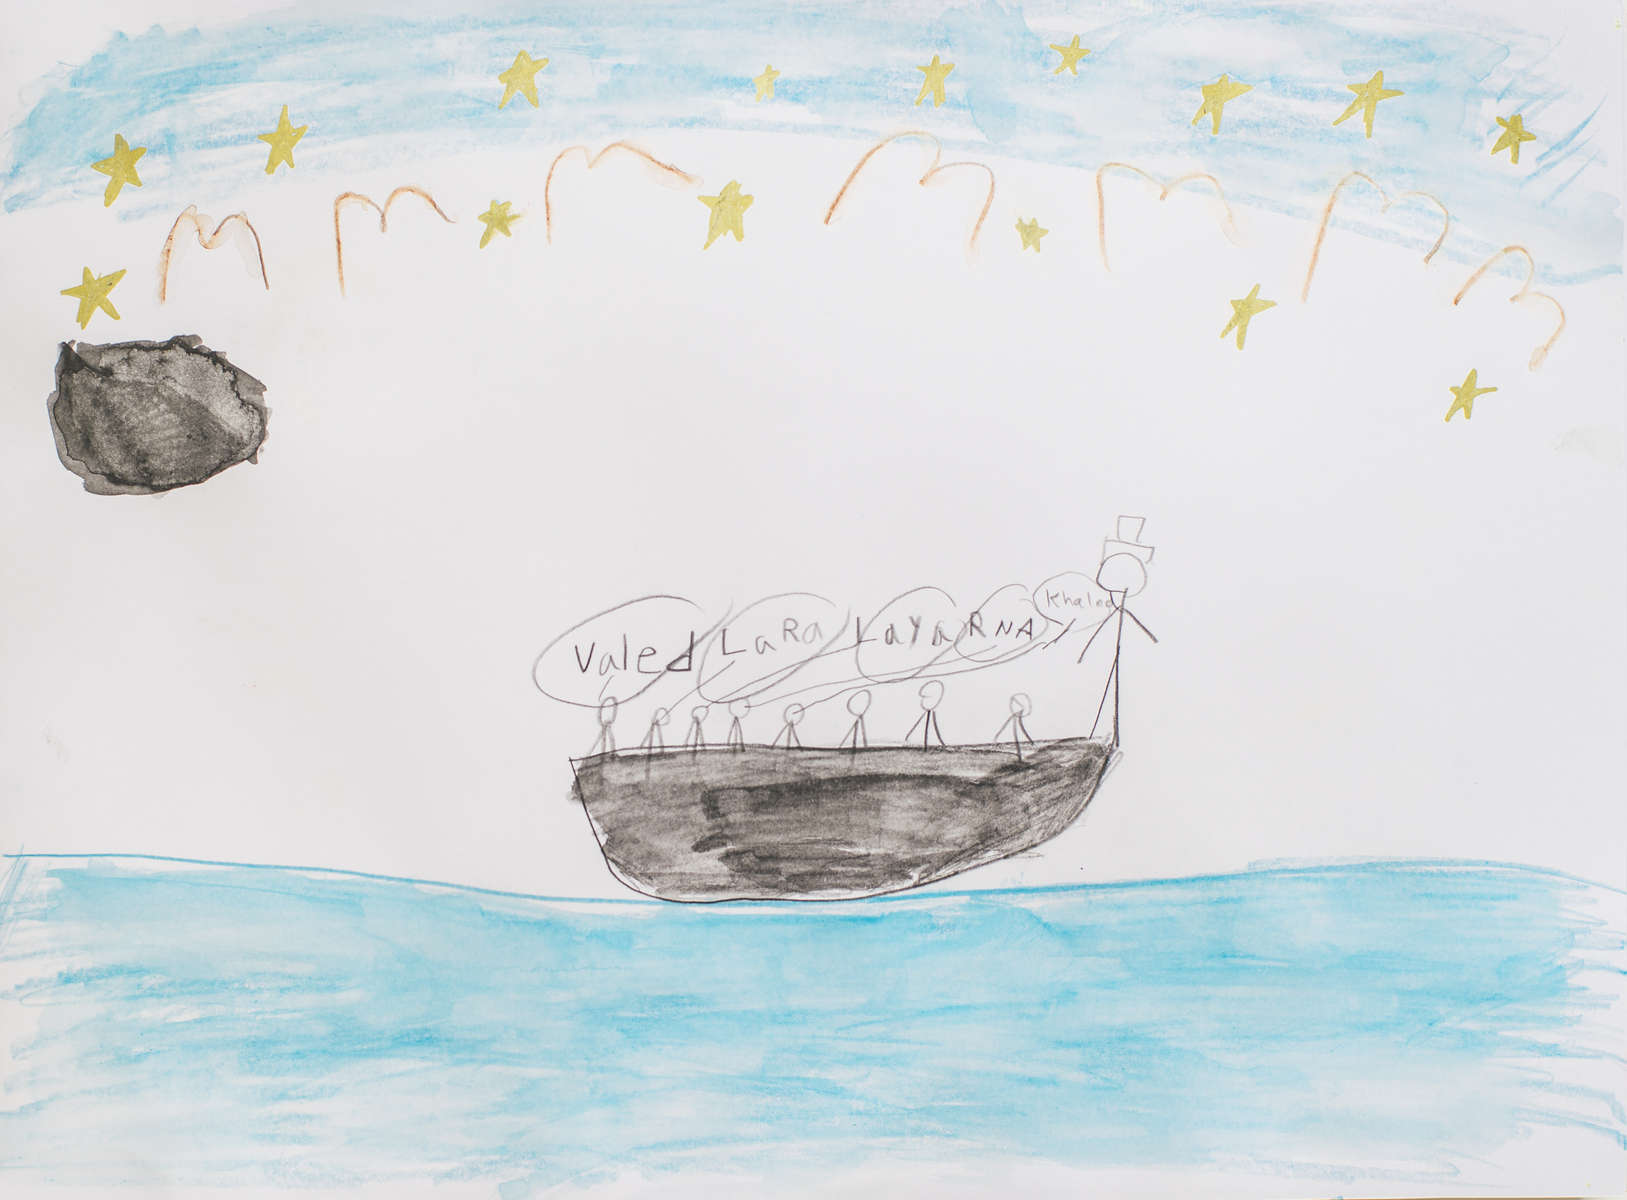 The Al-Khazam family on the boat from Egypt to Italy, under a new moon. Drawing by Laya Al-Khazam.On a week when the weather was good and the seas were calm, Laya's parents decided it was the safest time to cross the Mediterranean to Europe. It was December of 2014 and the beginning of winter. Laya's family left from the shores of Alexandria, Egypt under the cover of a new moon, when the sky was clear and dark, so that others wouldn't see them. They were scared because they knew that the journey was dangerous. They traveled on the sea for a week. There was only one bathroom for 400 people. At times, Laya wanted to get up and run around. But the boat was crowded, and people were not in a playful mood. So instead, Laya sat quietly. She looked up at the sky and dreamed about reaching Sweden.By the seventh and final day of the journey, there was no food or water left. Lots of children cried and people got sick. But Khaled and Rana--Laya's parents--were surprised. None of their children—eight-year-old Laya, ten-year-old Waled or even four-year-old Lara—cried or complained the entire week they were on the boat. Finally, after what felt like forever, the Al-Khazam's boat reached the shores of Italy. They finally had made it to Europe. When all of their family was off the boat, they stood on the beach and hugged for a long time.